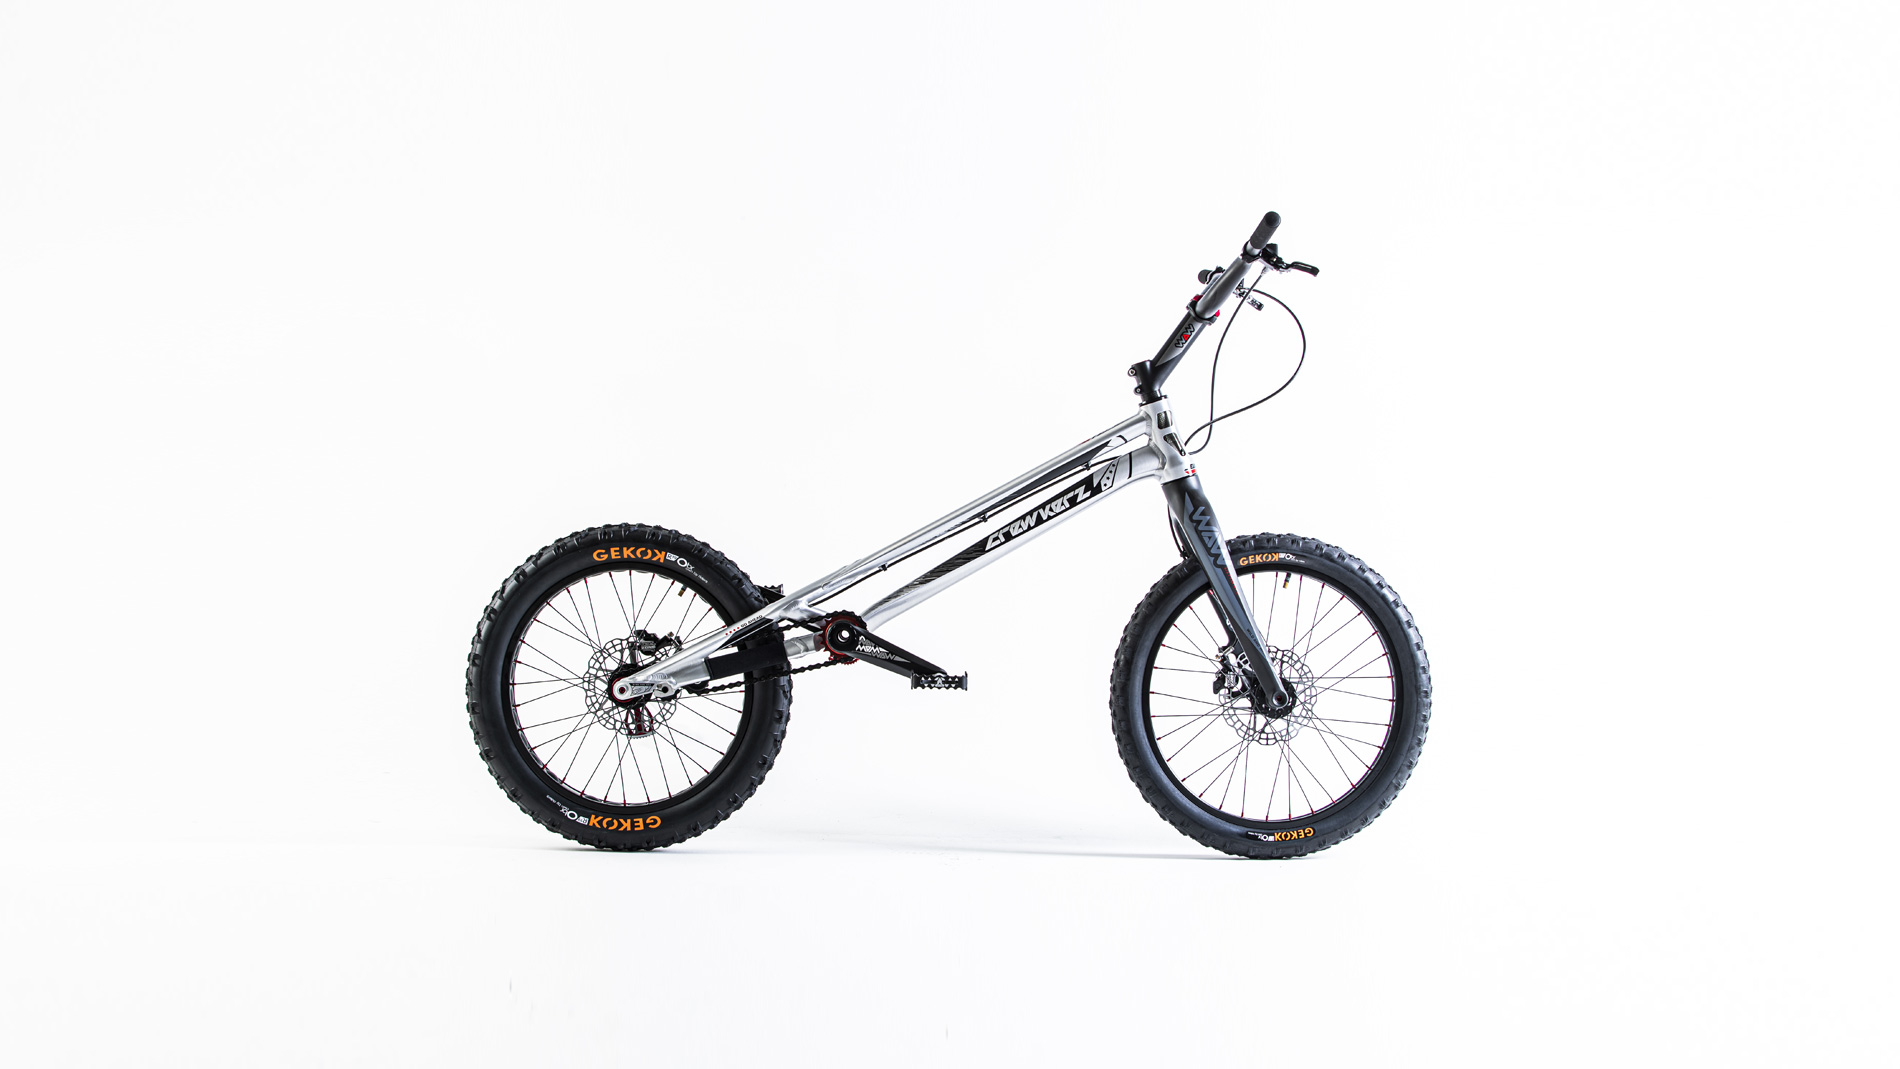 https://www.crewkerz.com/wp-content/uploads/2019/08/crewkerz-jealousy-velo-20-ultimate-trial-2019-velol-mountain-bike-1.jpg